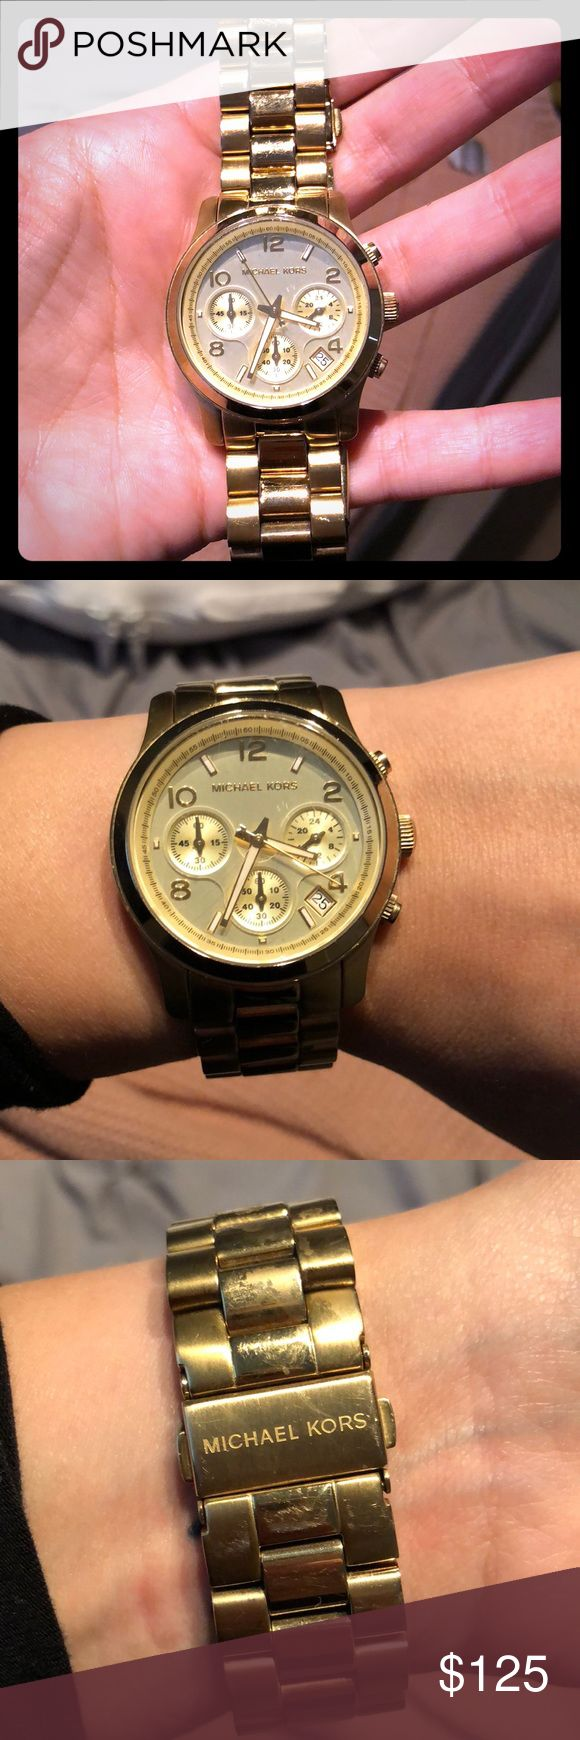 """Michael Kota Icon Watch in Gold Used Michael Kors oversized watch in Gold. No box, band is 6.6-7"""". I do not have the box or extra links. Michael Kors Accessories Watches"""